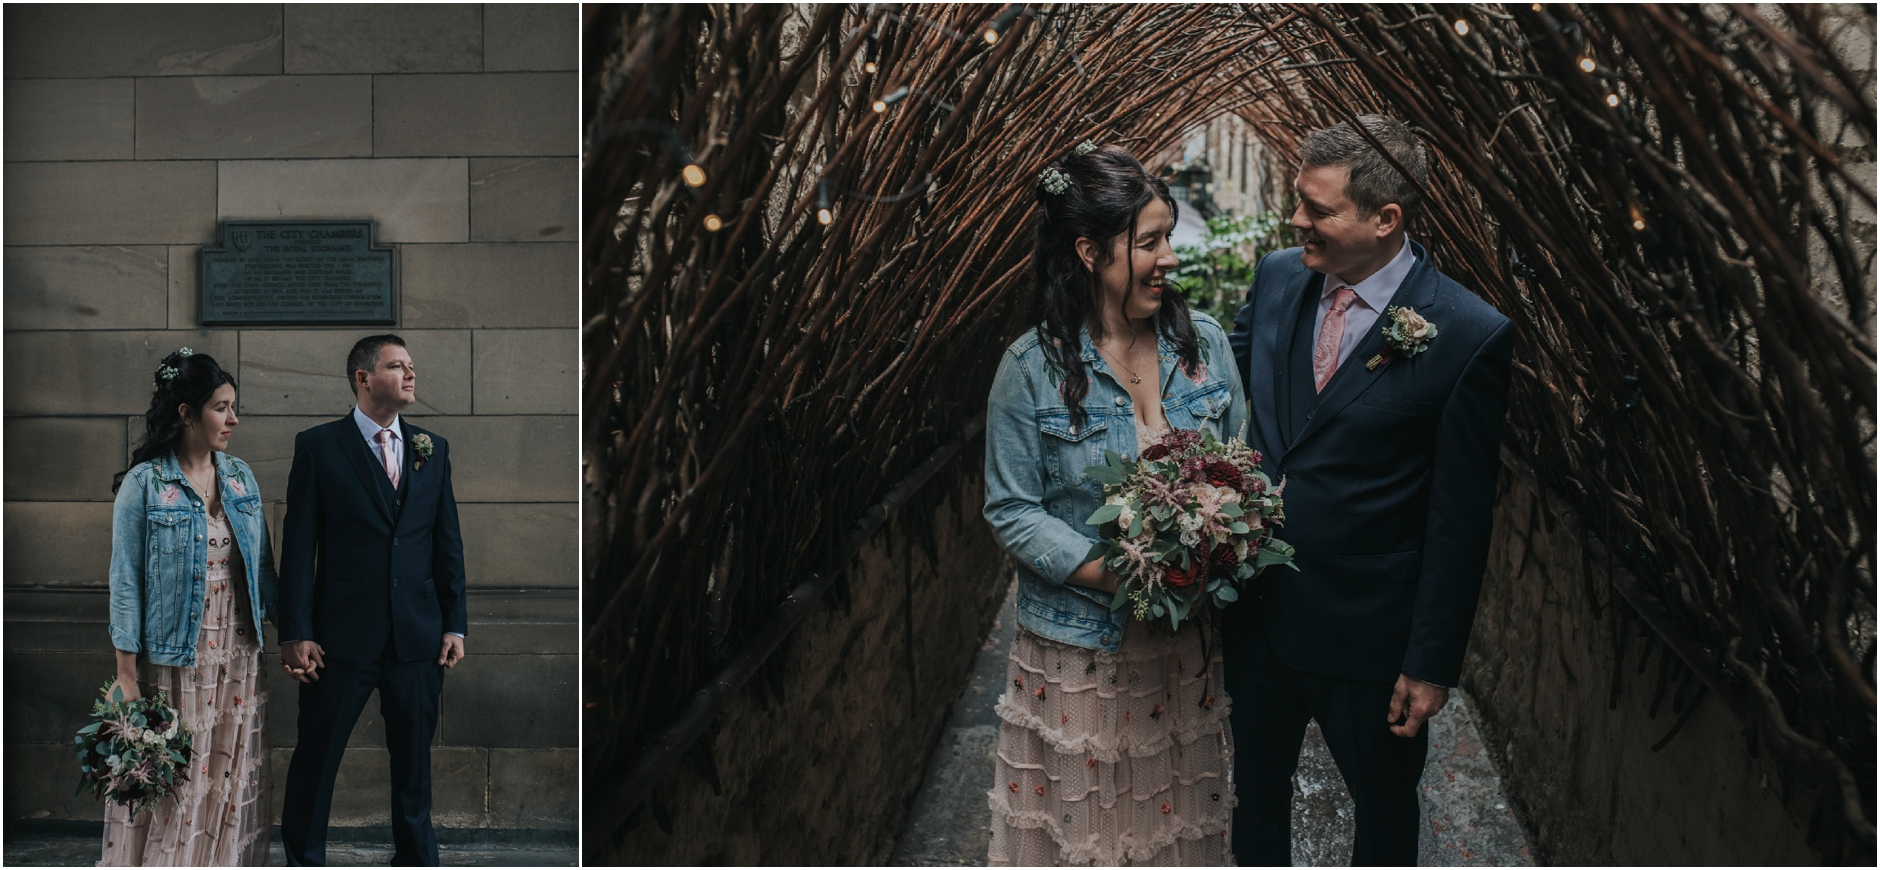 rainy edinburgh scotland alternative elopement wedding photographer